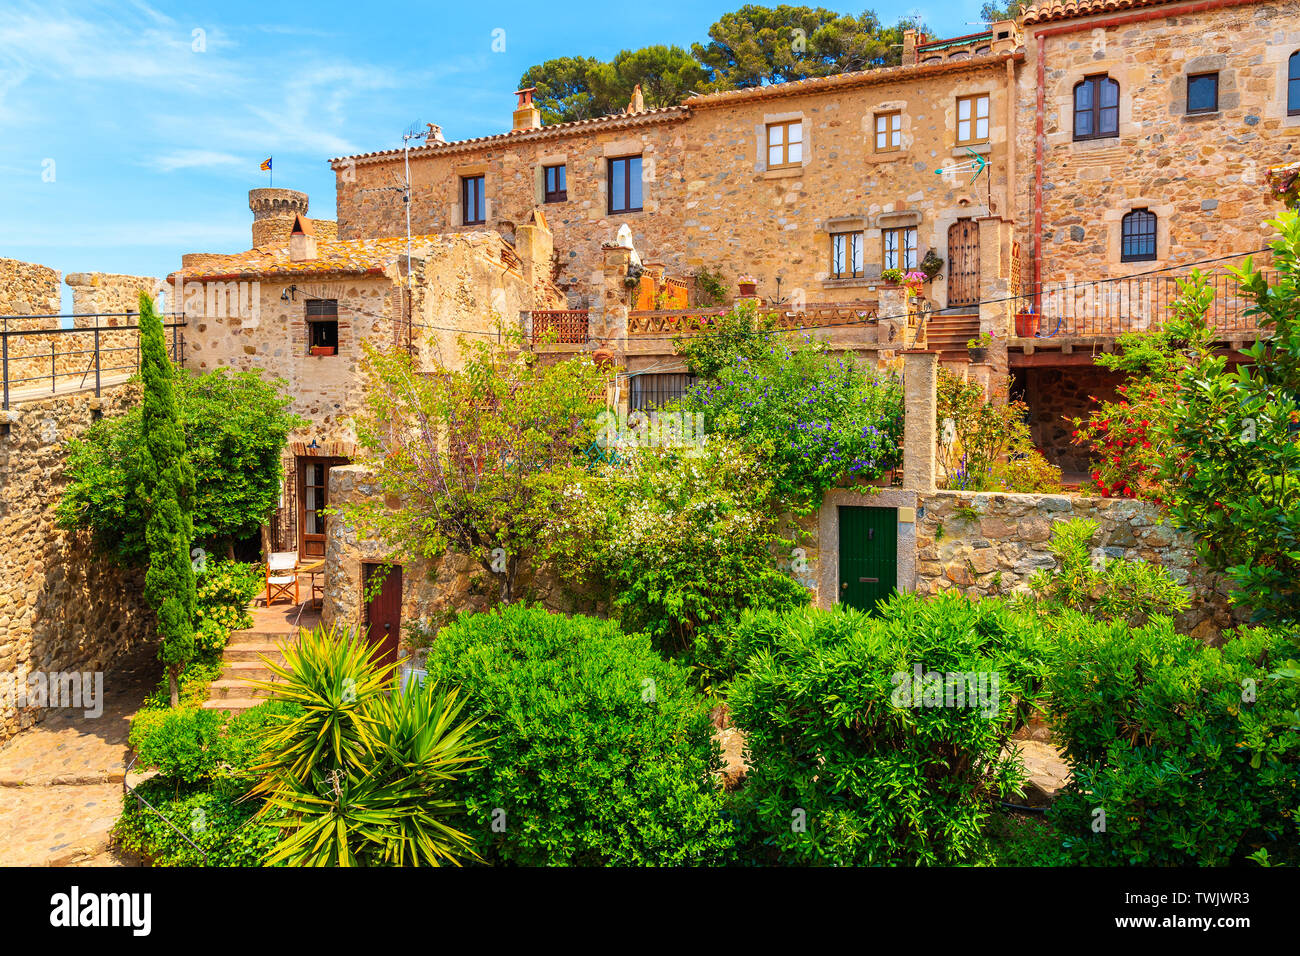 Green tropical plants and stone houses in old town of Tossa de Mar, Costa Brava, Spain Stock Photo